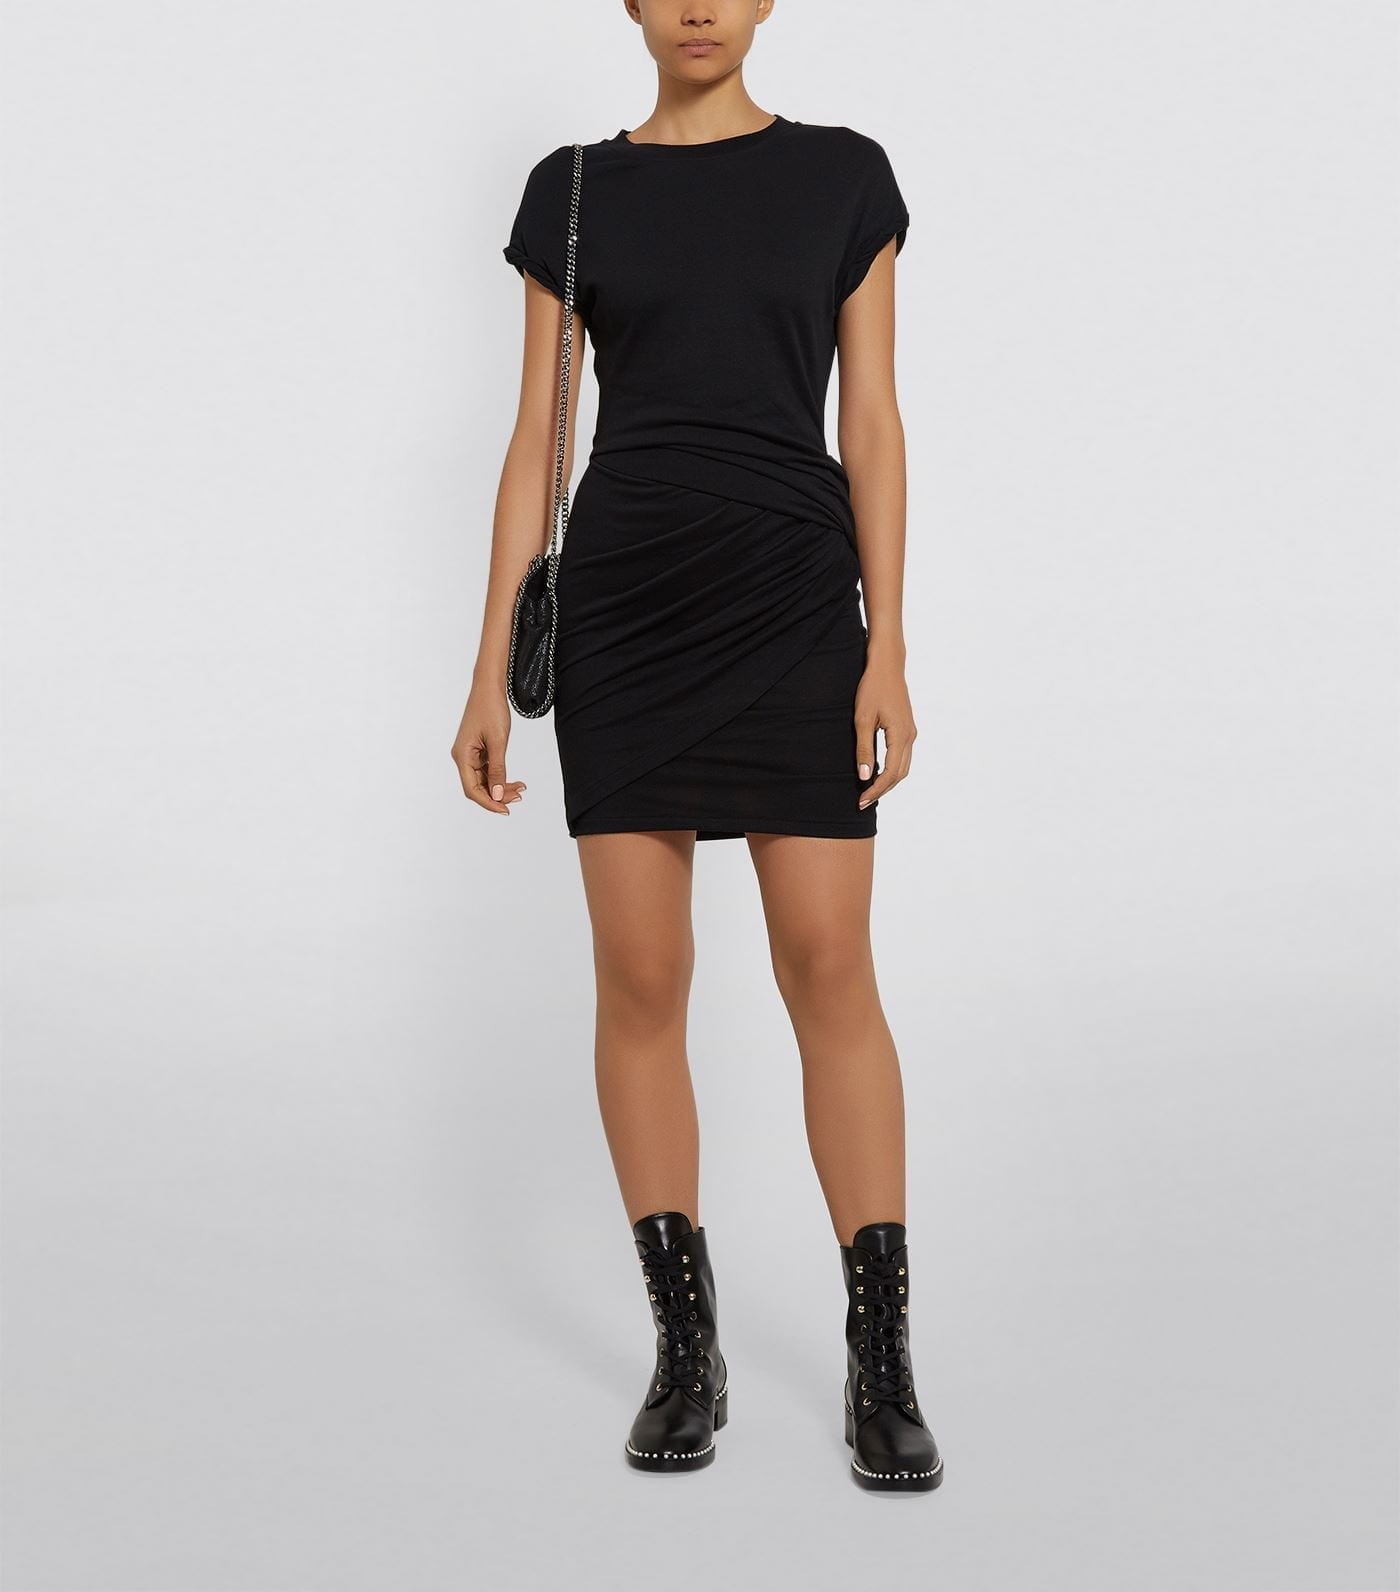 ALLSAINTS Freidala Mini Dress